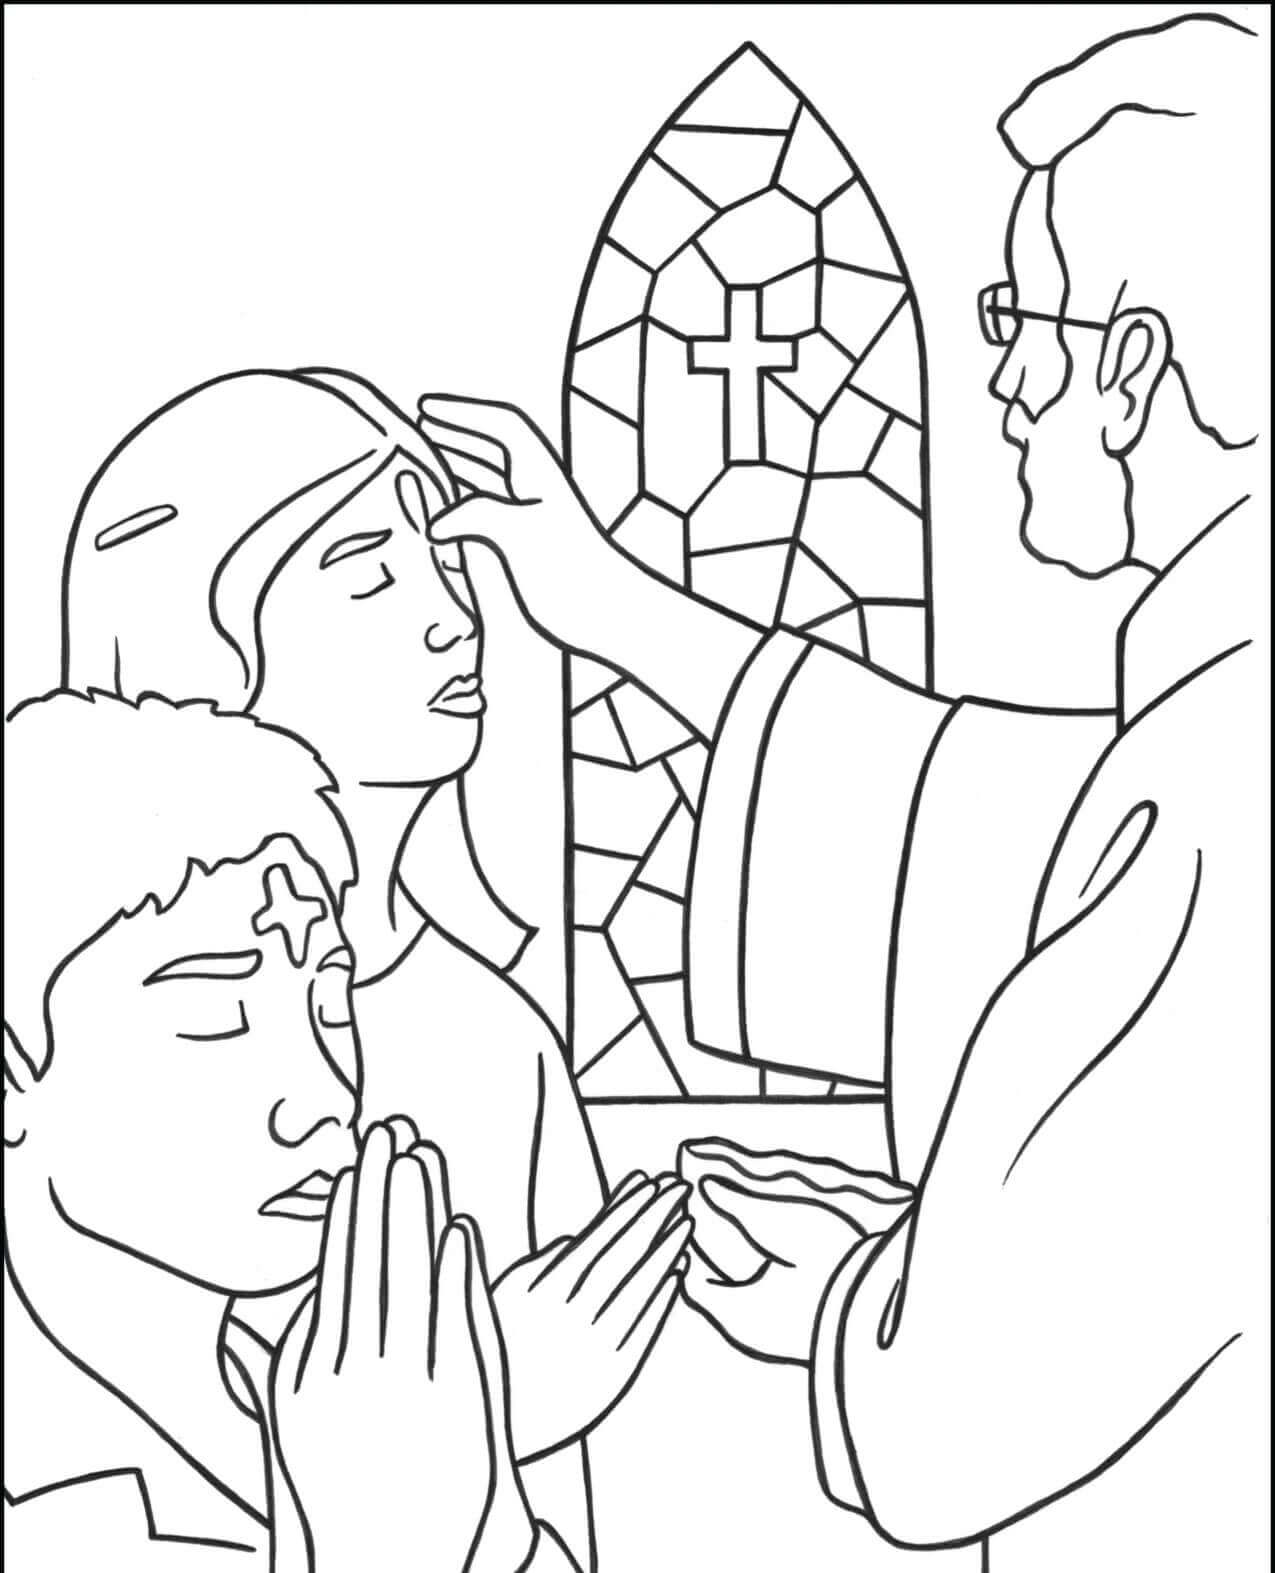 Lent Ash Wednesday Coloring Pages Free Printable